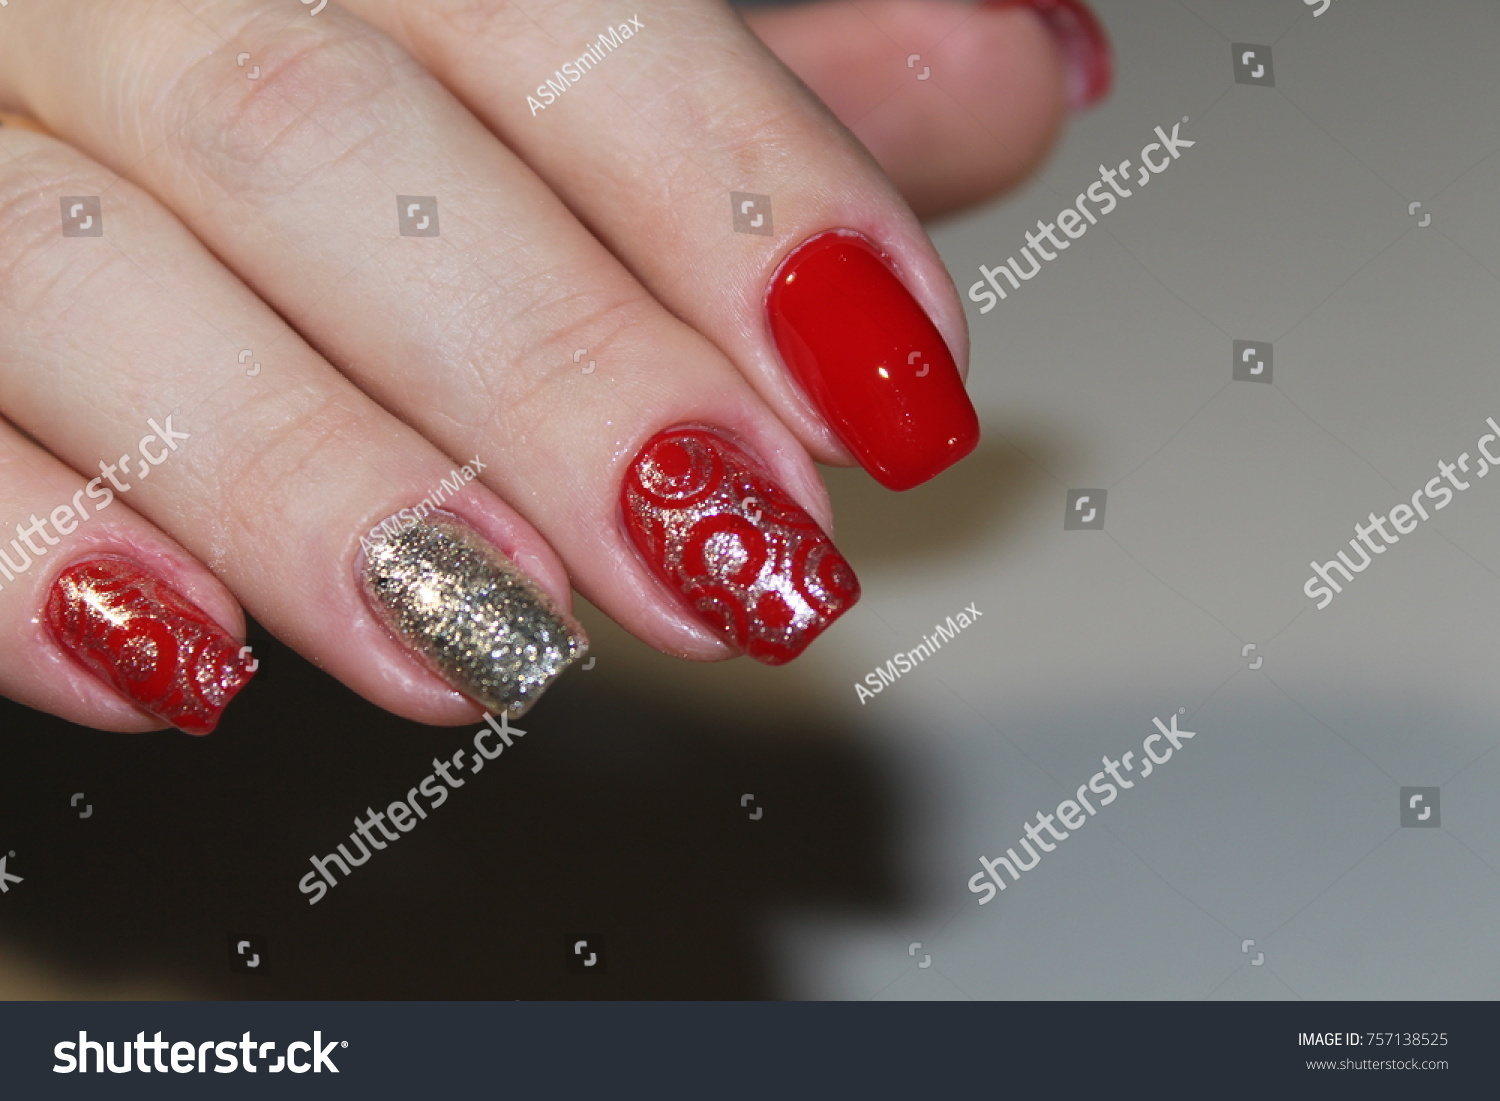 Fashion Nails Design Manicure Best 2017 Stock Photo (Download Now ...